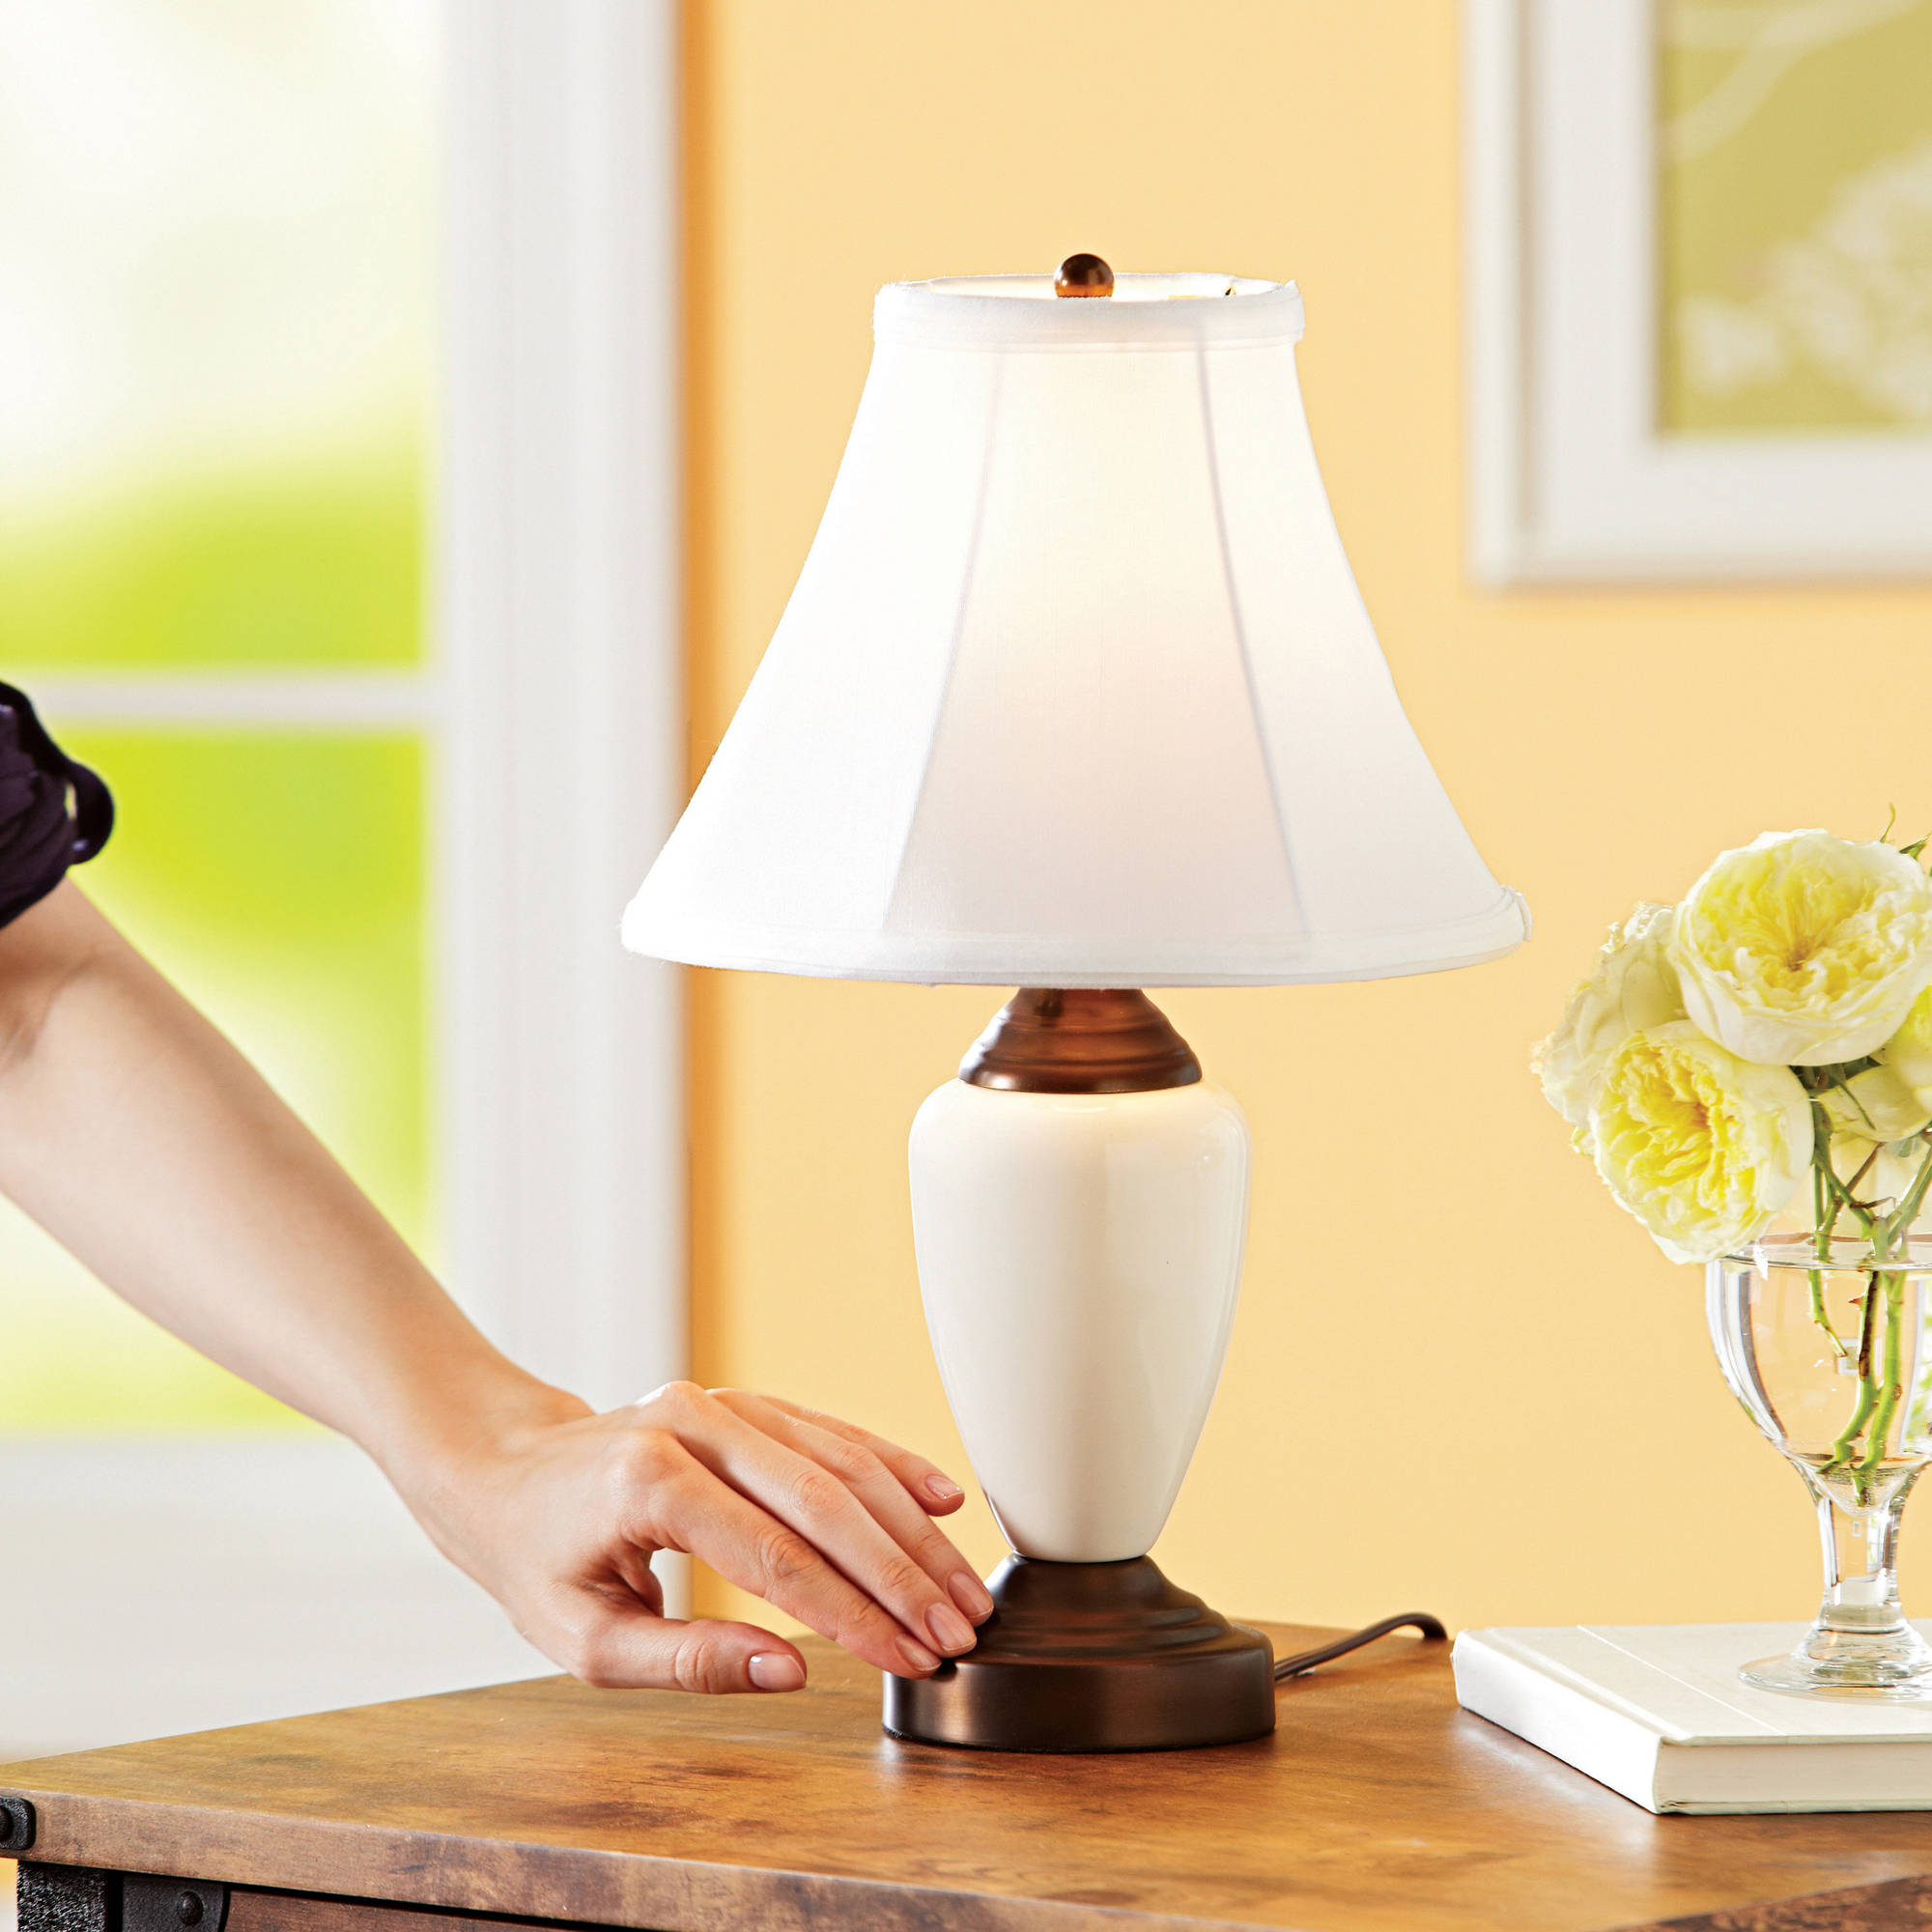 Surprising Better Homes Gardens Touch Lamp Multiple Colors Interior Design Ideas Philsoteloinfo